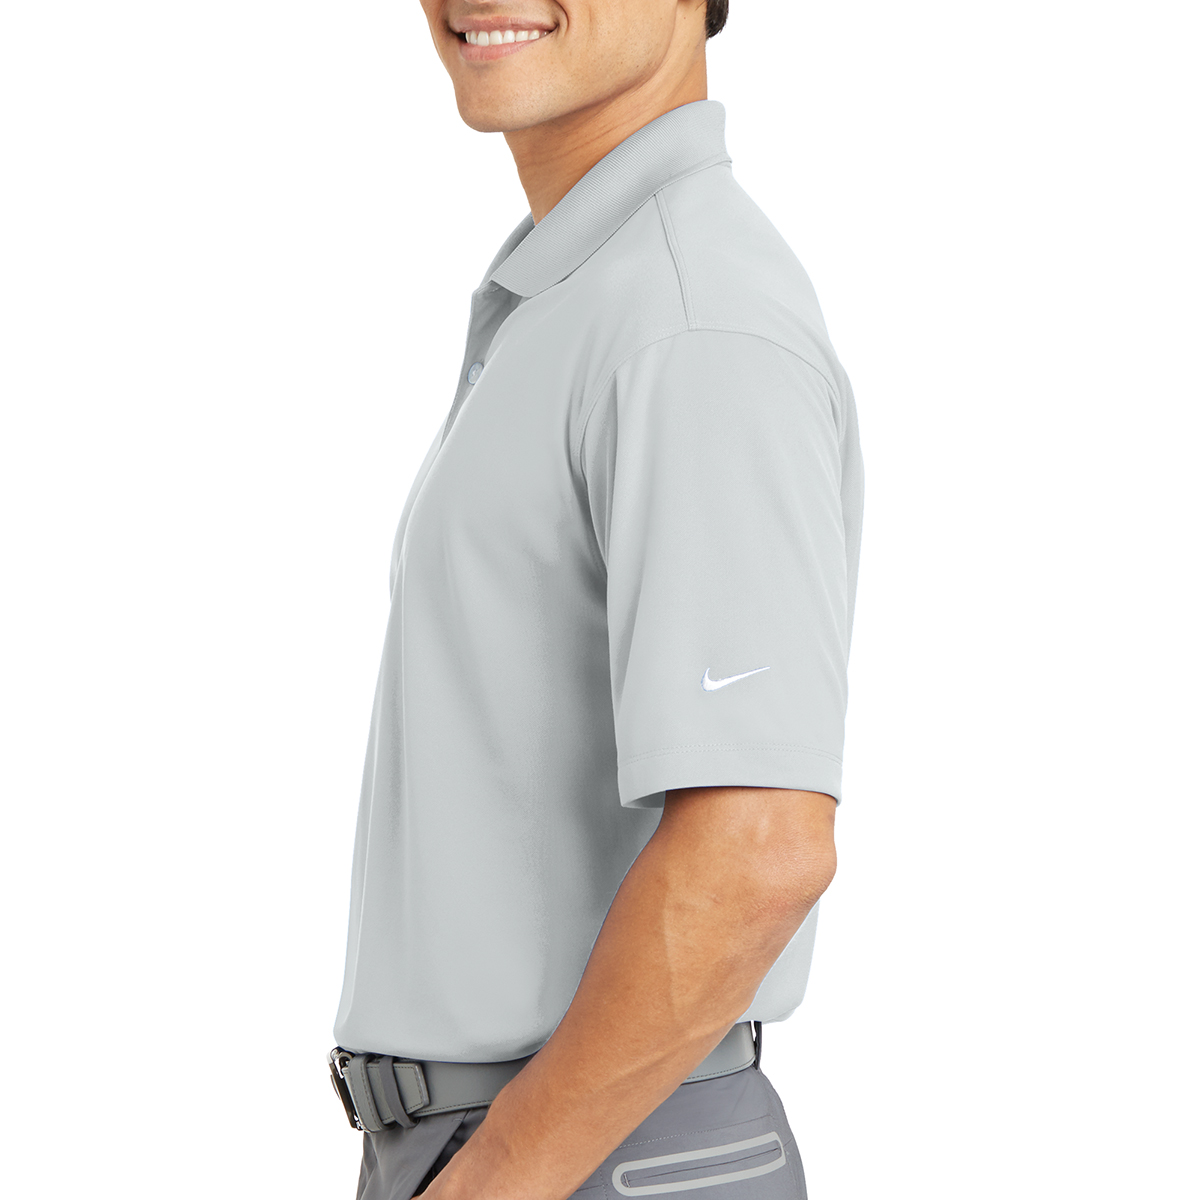 7401b132 363807 Nike Dri-FIT Micro Pique Polo - Hit Promotional Products